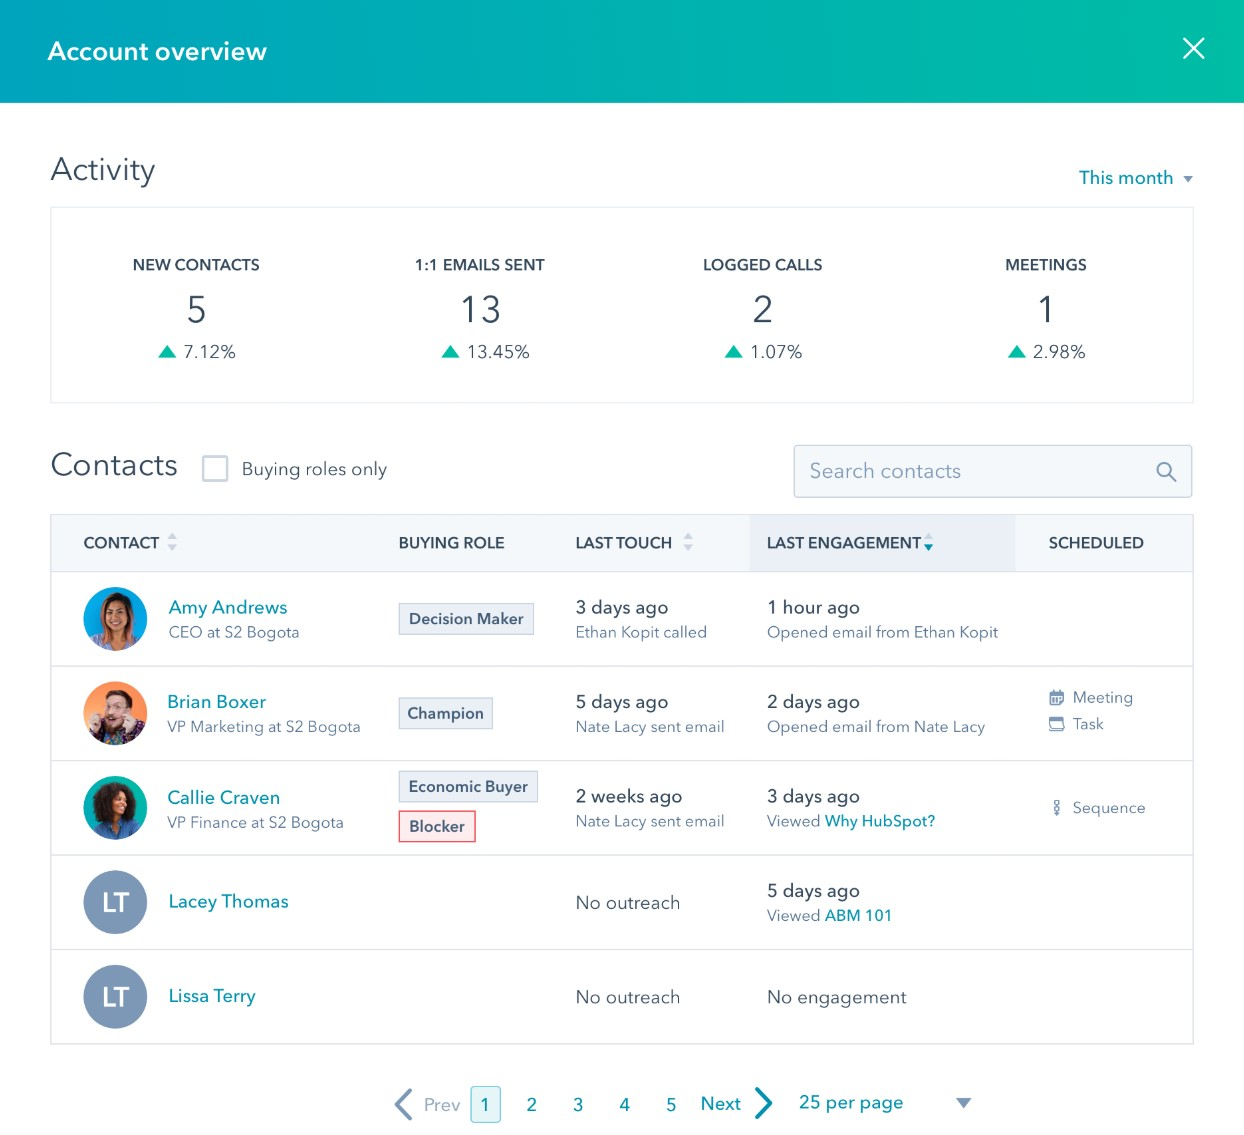 abm-account overview